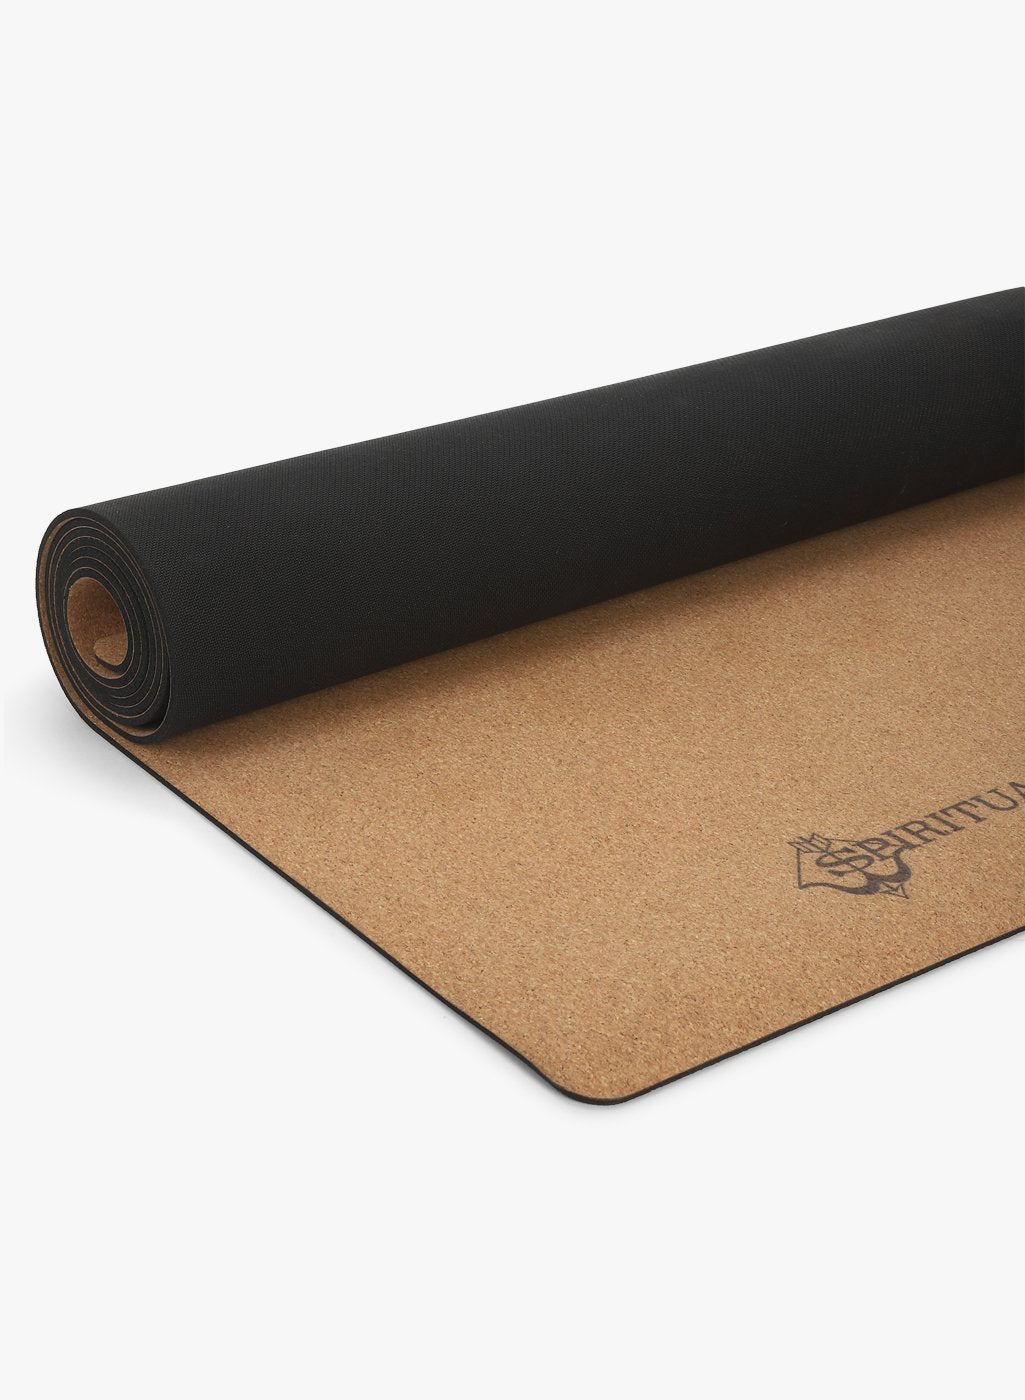 Shakti Warrior Cork Yoga Mat